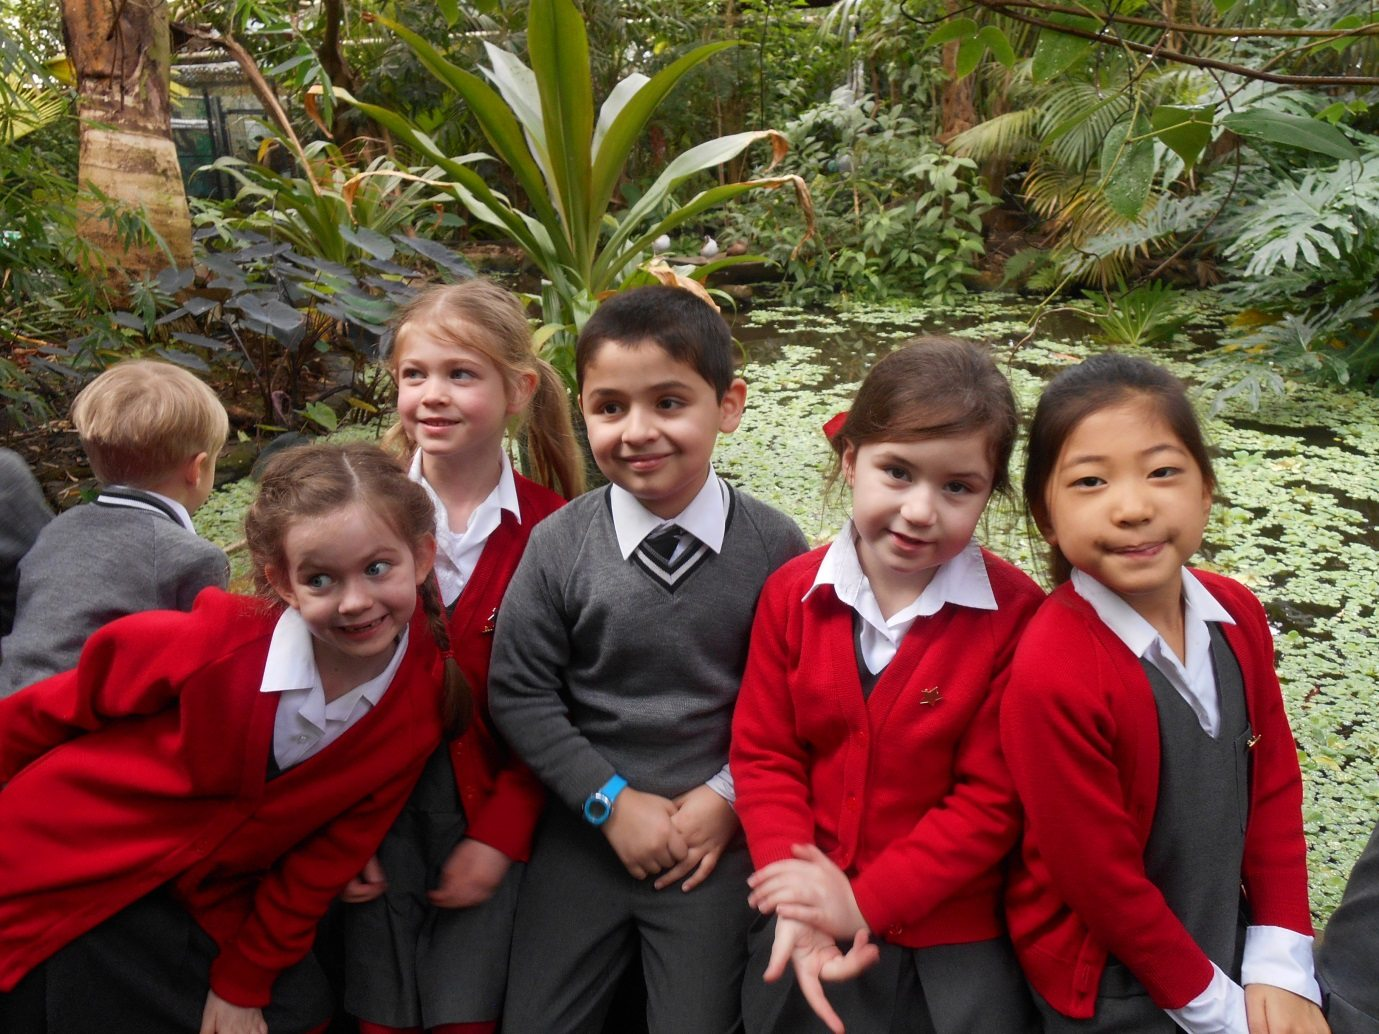 Downsend pupils explore the rainforest